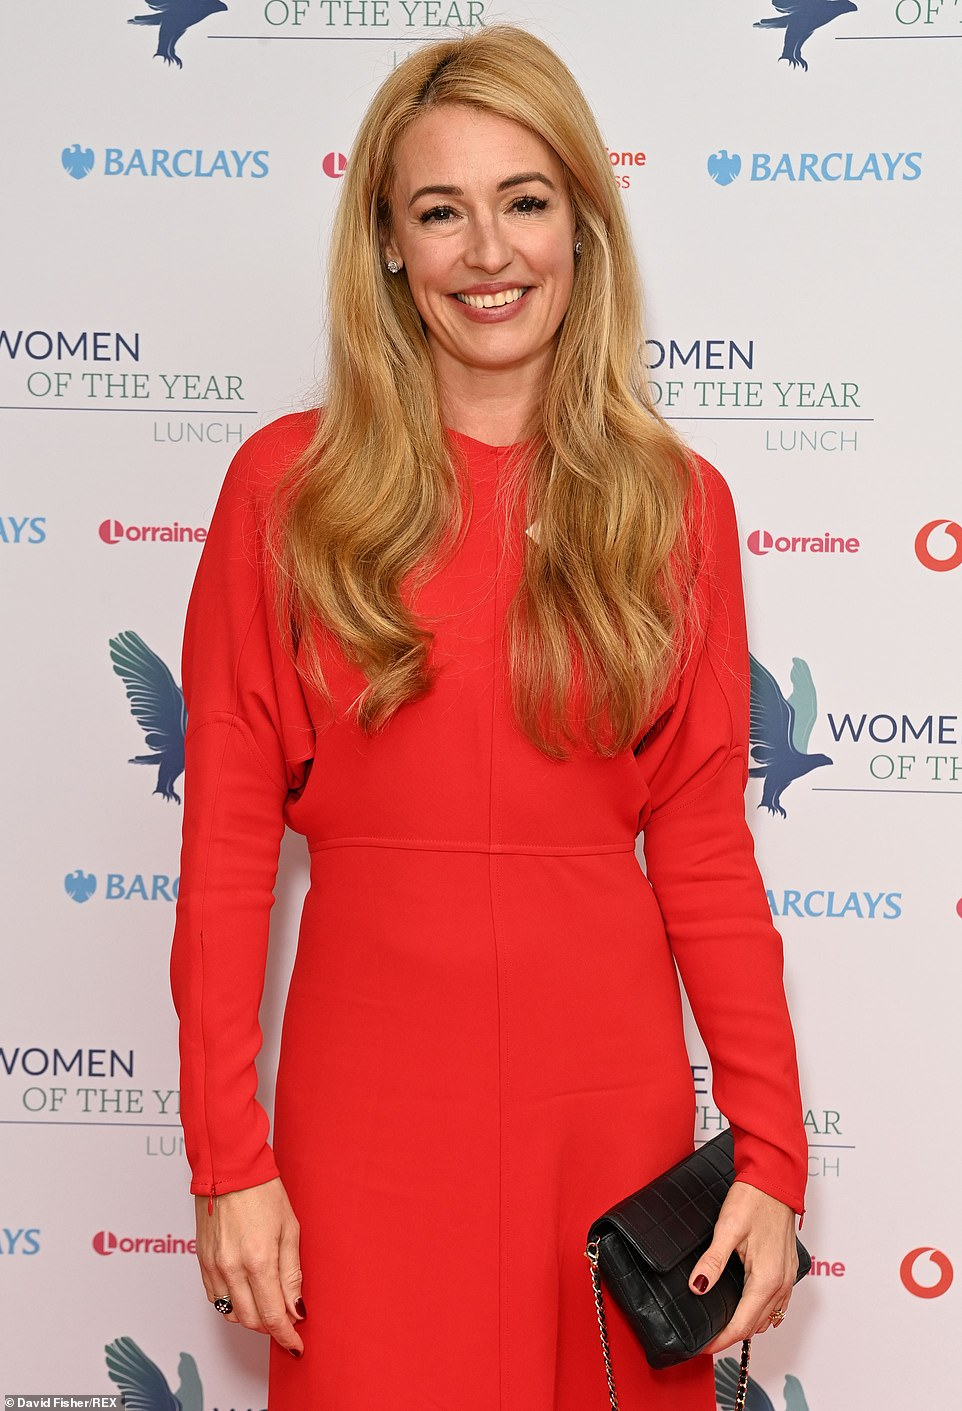 , Women Of The Year Lunch and Awards 2021: Cat Deeley joins a host of stars at this year's ceremony, The Evepost BBC News